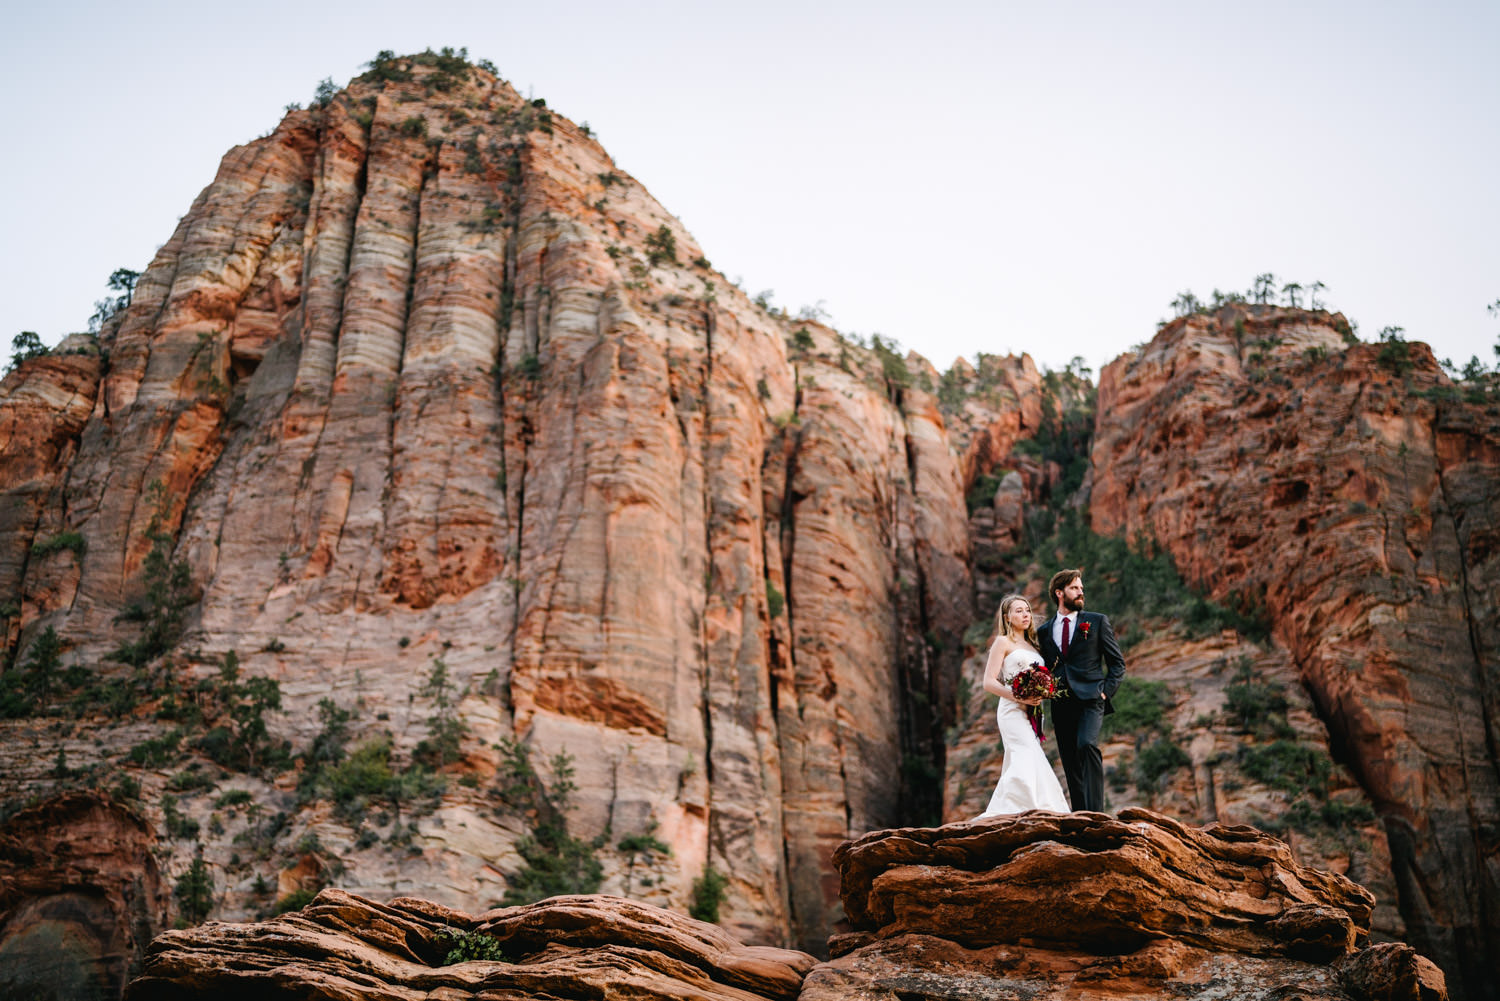 zionnationalpark_utah_destinationweddingphotographer_austendiamondphotography-10